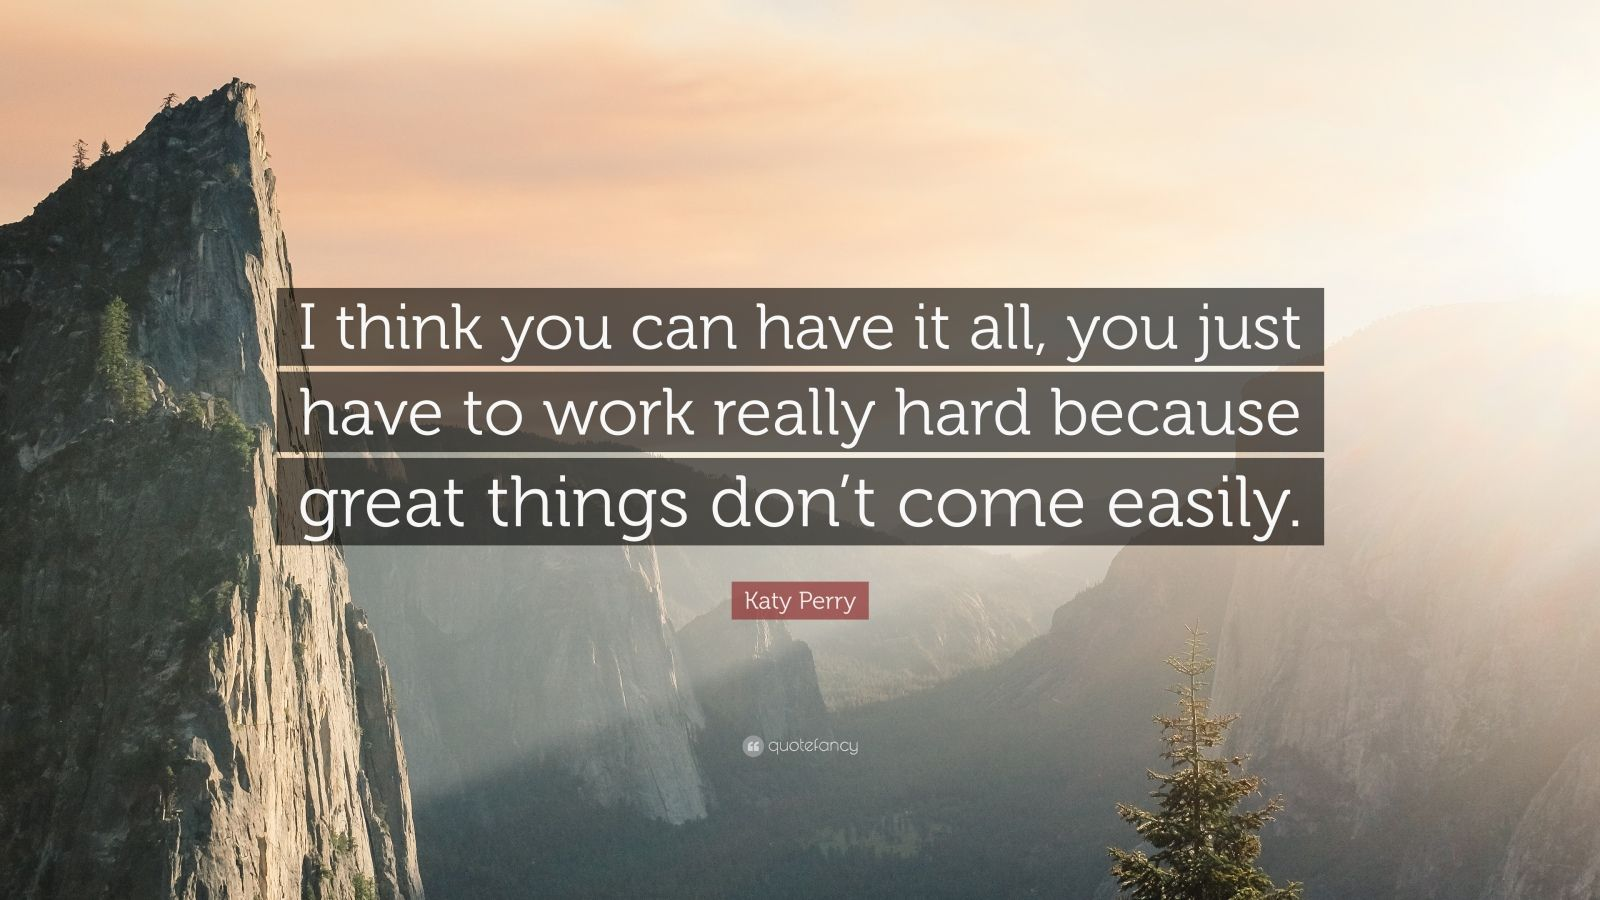 """Katy Perry Quote: """"I think you can have it all, you just have to work really hard because great things don't come easily."""""""